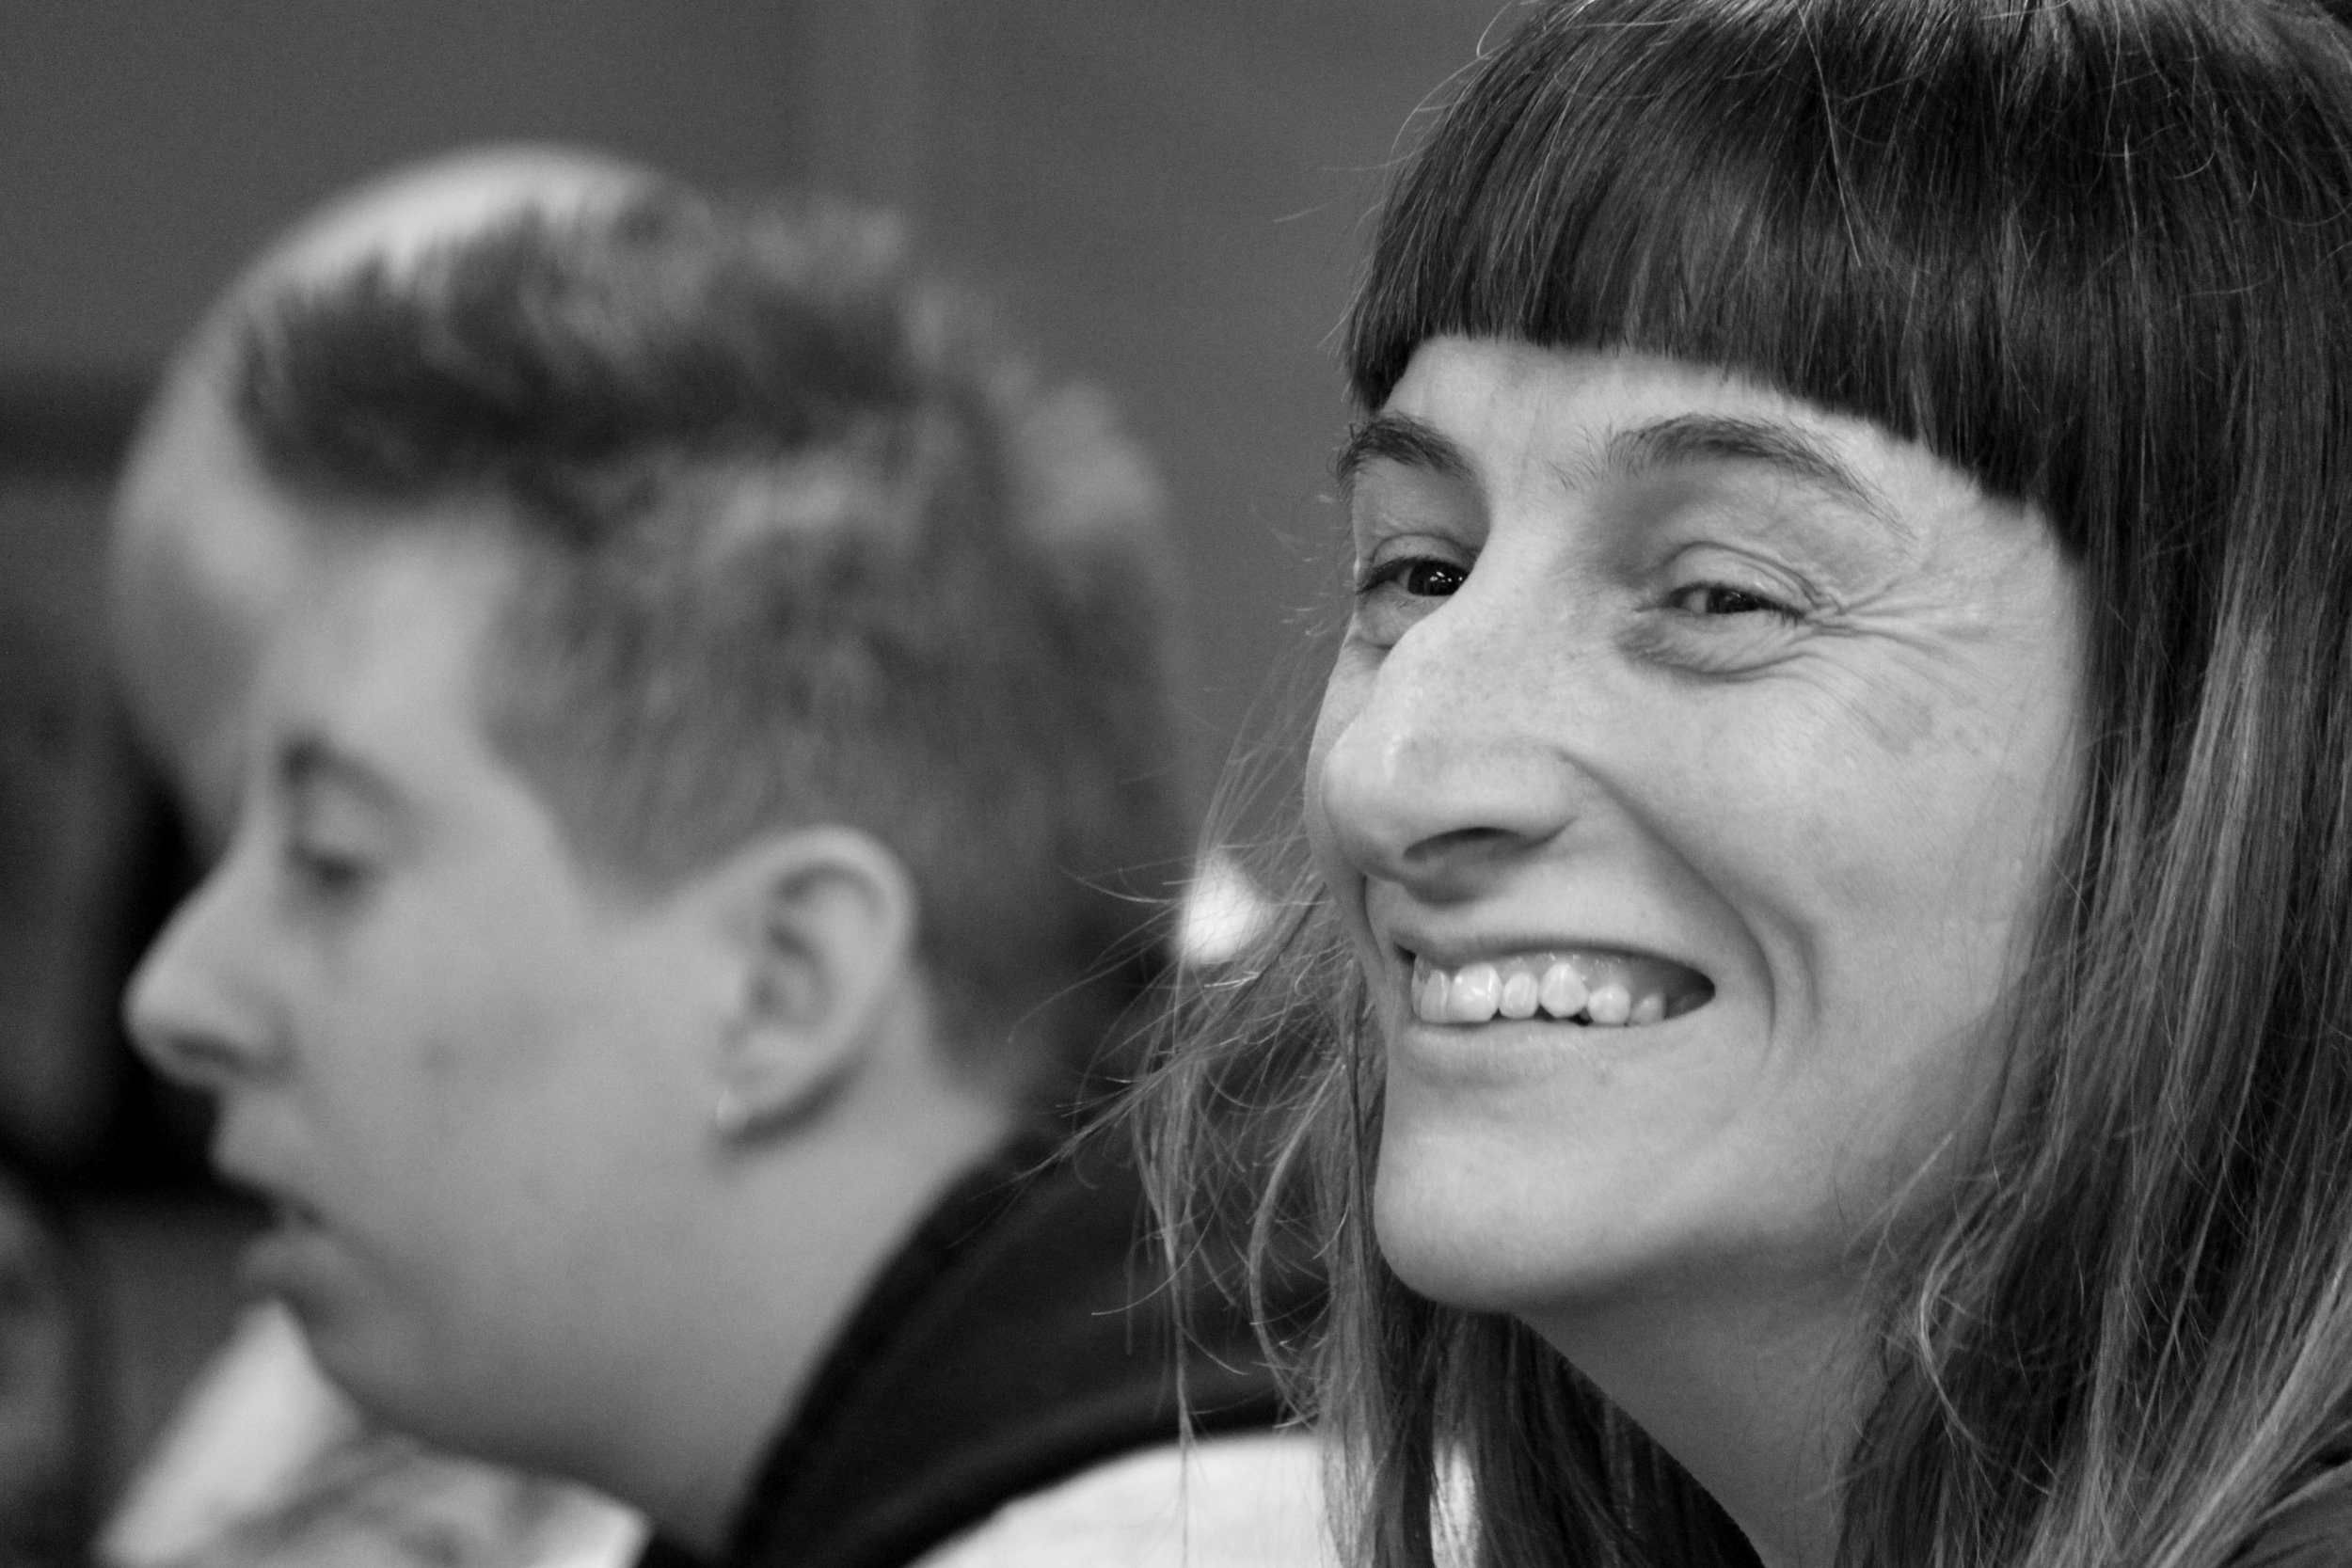 Two faces are pictured, the one out of focus is in the background on the left. The one in focus is in the foreground on the right. It is a young woman, she has a blunt fringe and a massive smile.